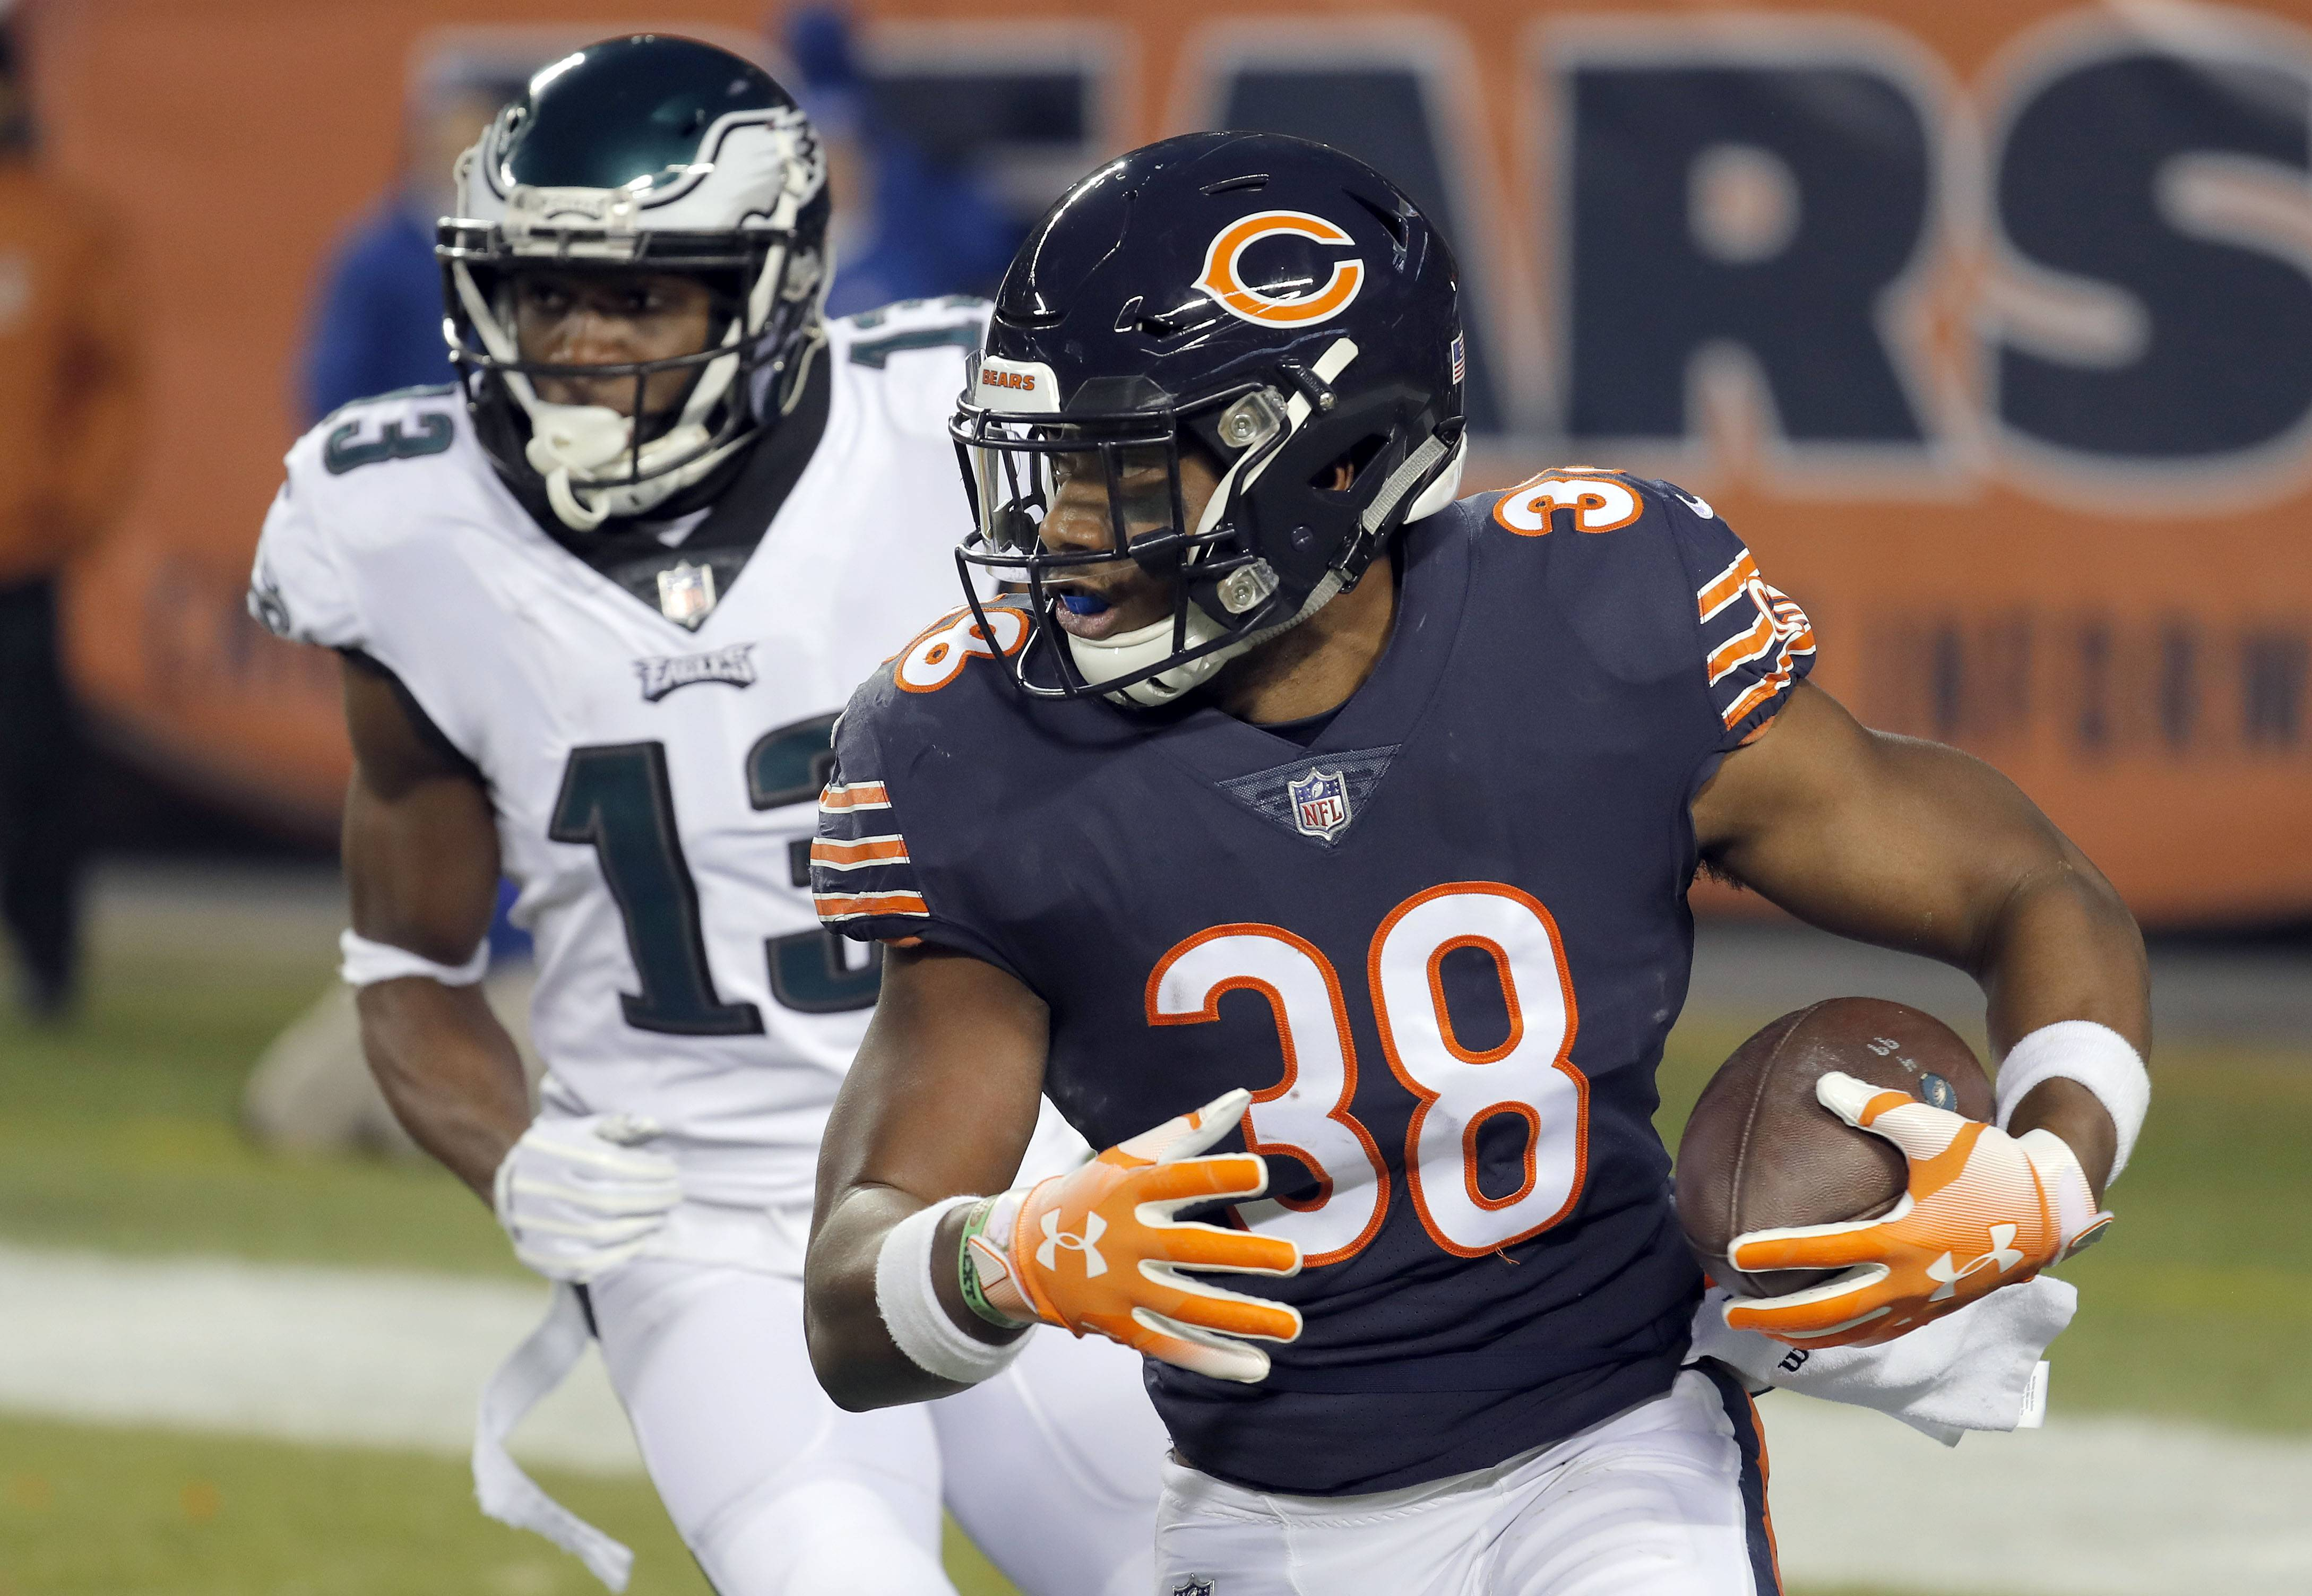 Letting both Bryce Callahan and Adrian Amos, pictured here intercepting the ball during this year's NFC wild-card game, go might be nice to get value-drafting GM Pace and Chicago back in compensatory pick game.